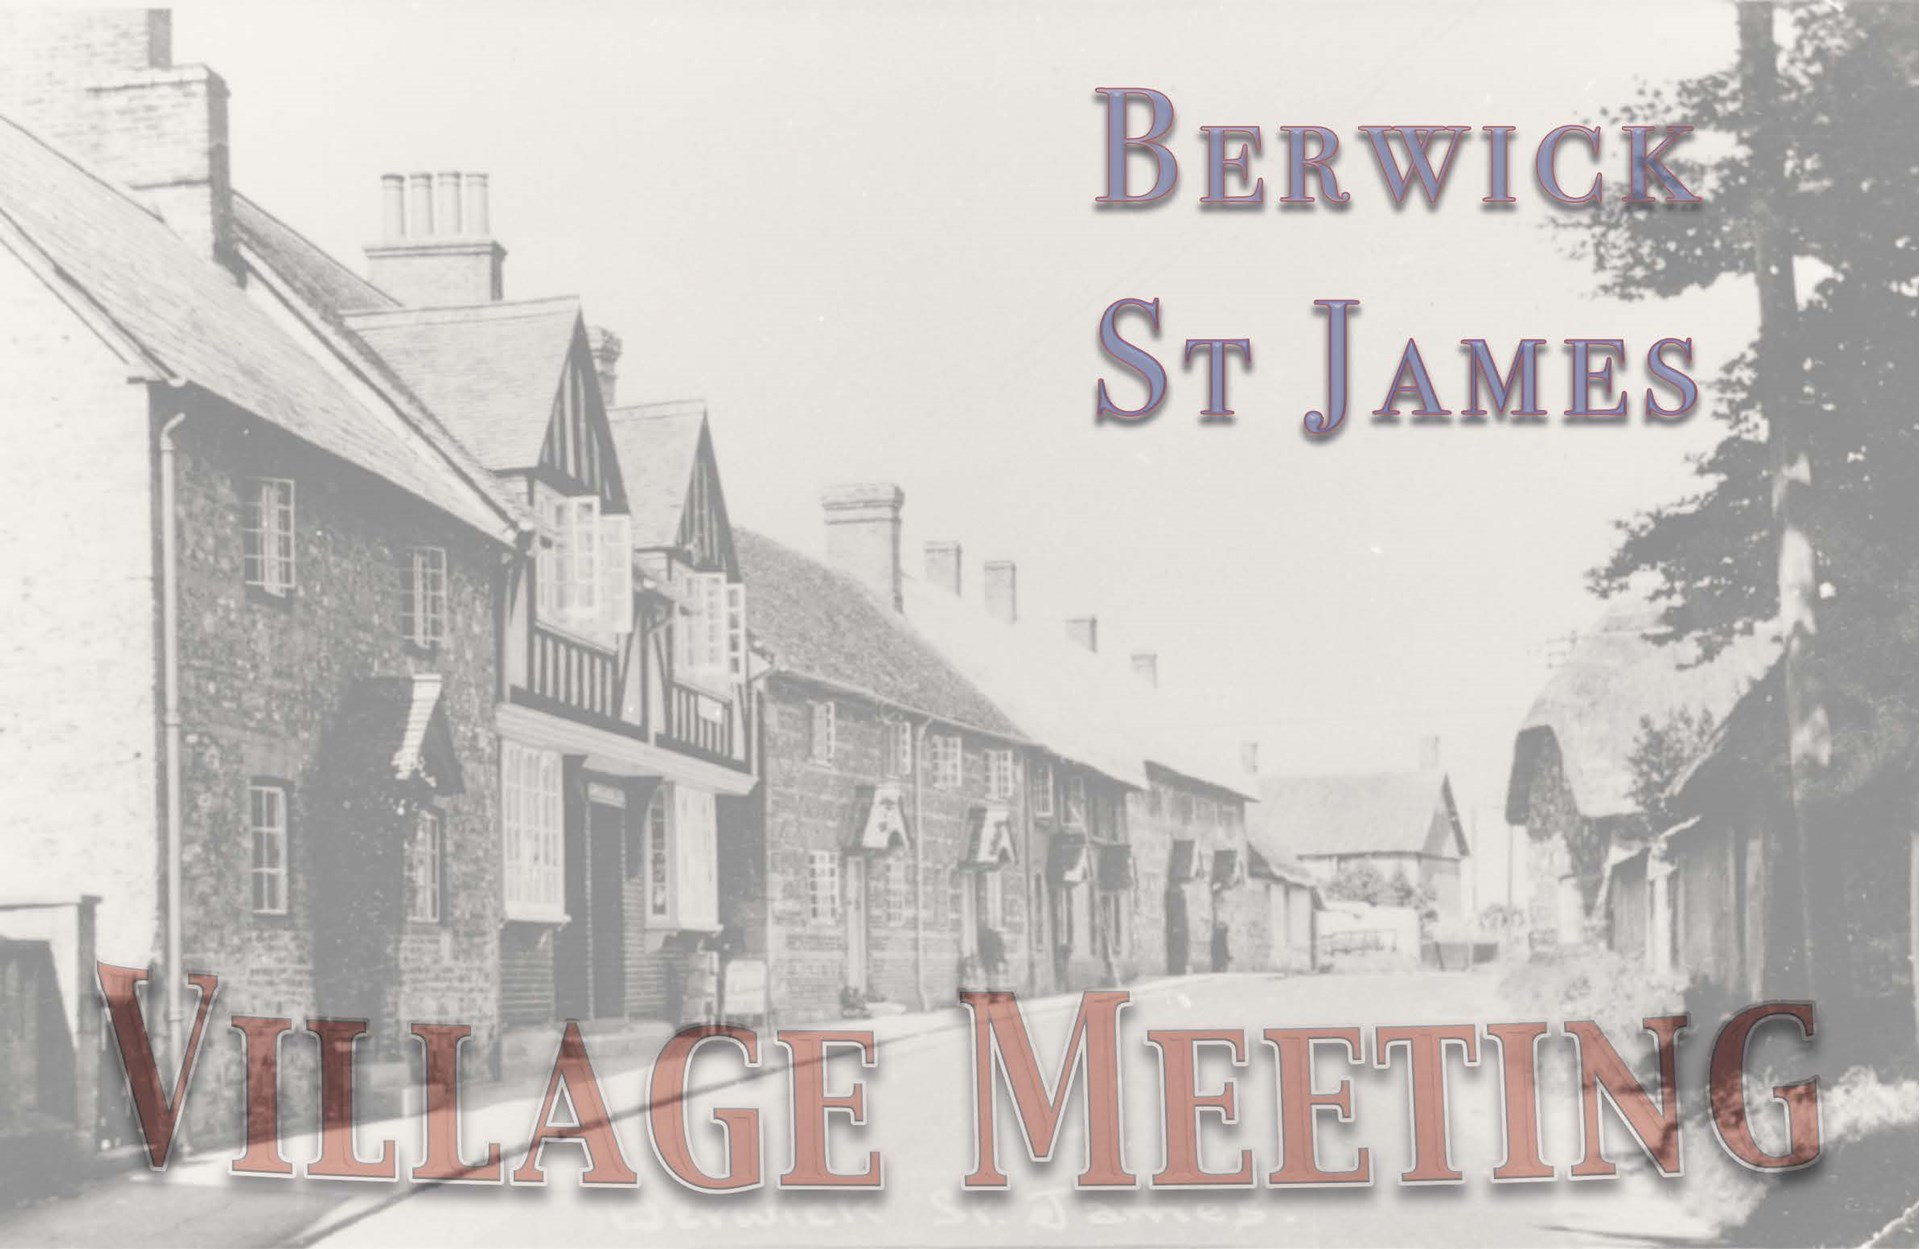 Berwick St James Parish Village Meeting - 7 October '13